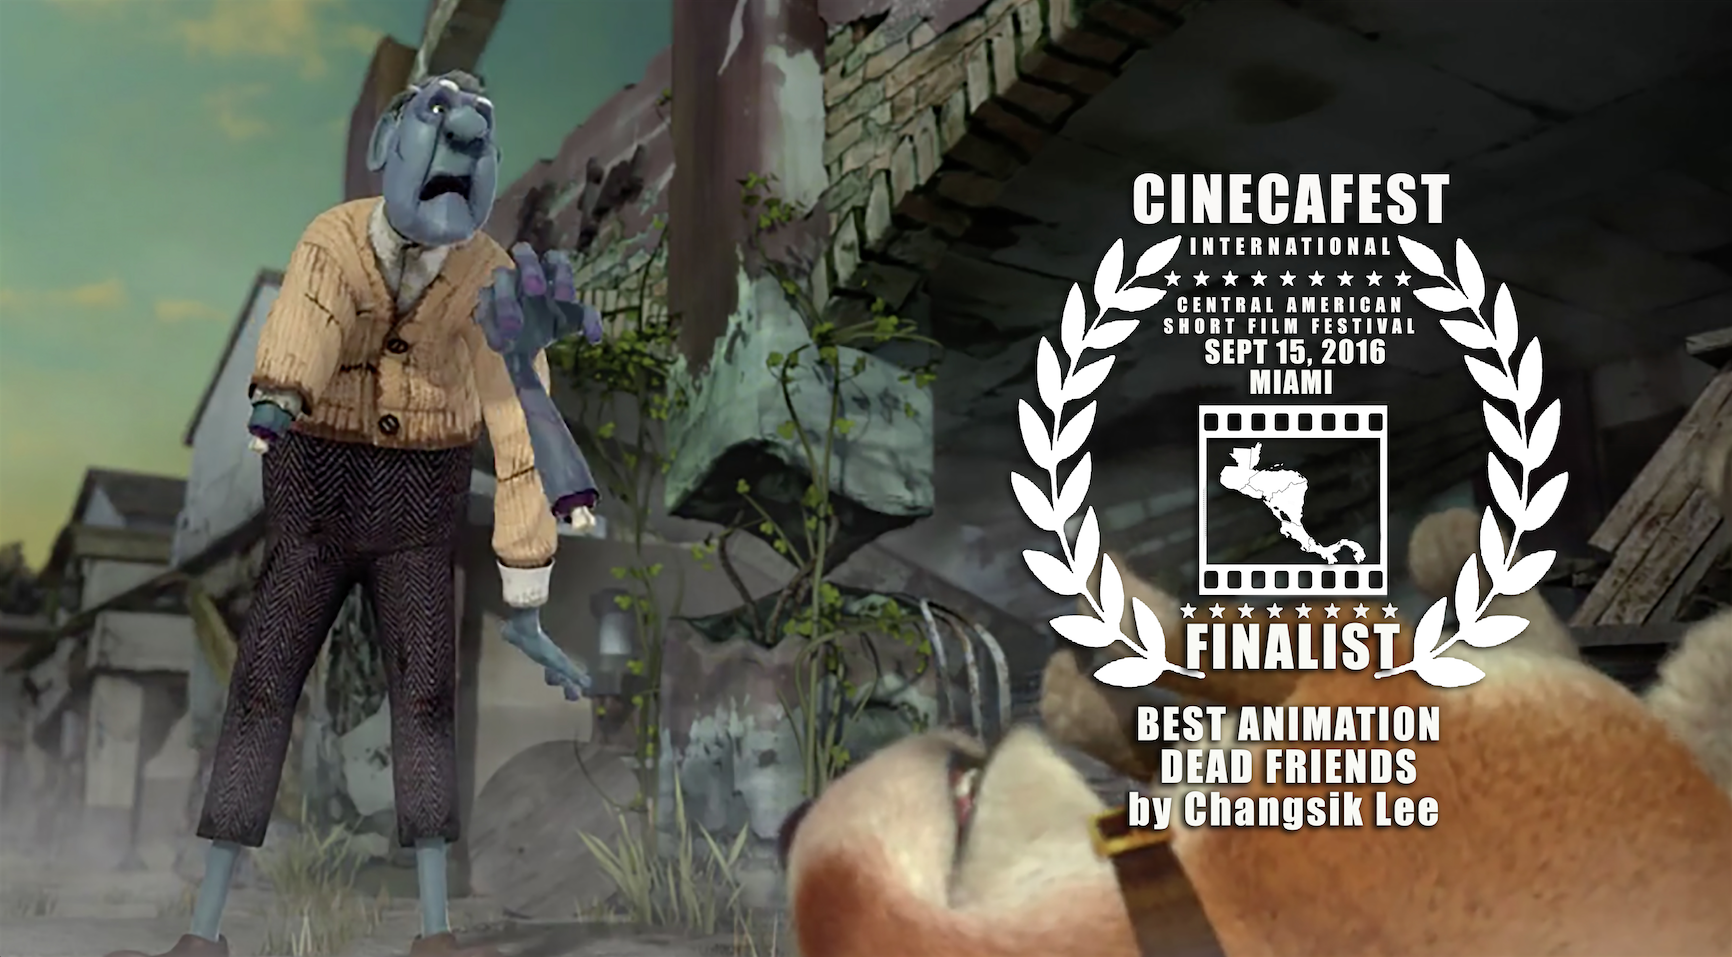 CINECAFEST BEST ANIMATION FINALIST DEAD FRIENDS.png